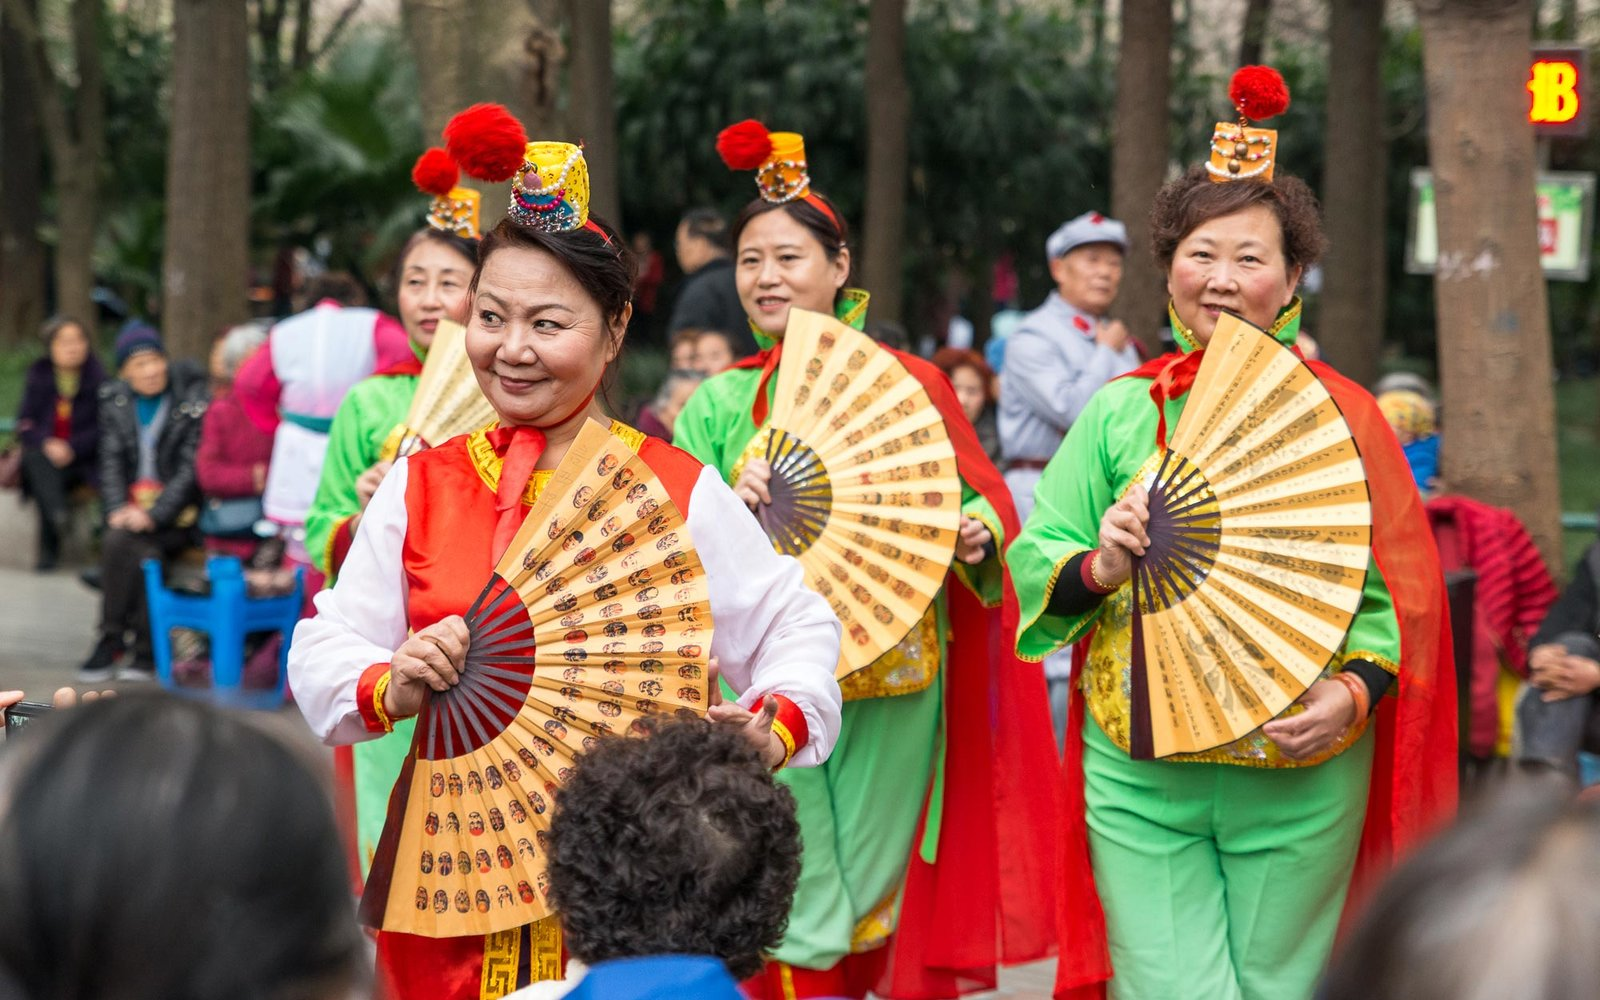 intro-peoples-park-womens-day-celebration-chengdu-china-CHENGDU0420.jpg